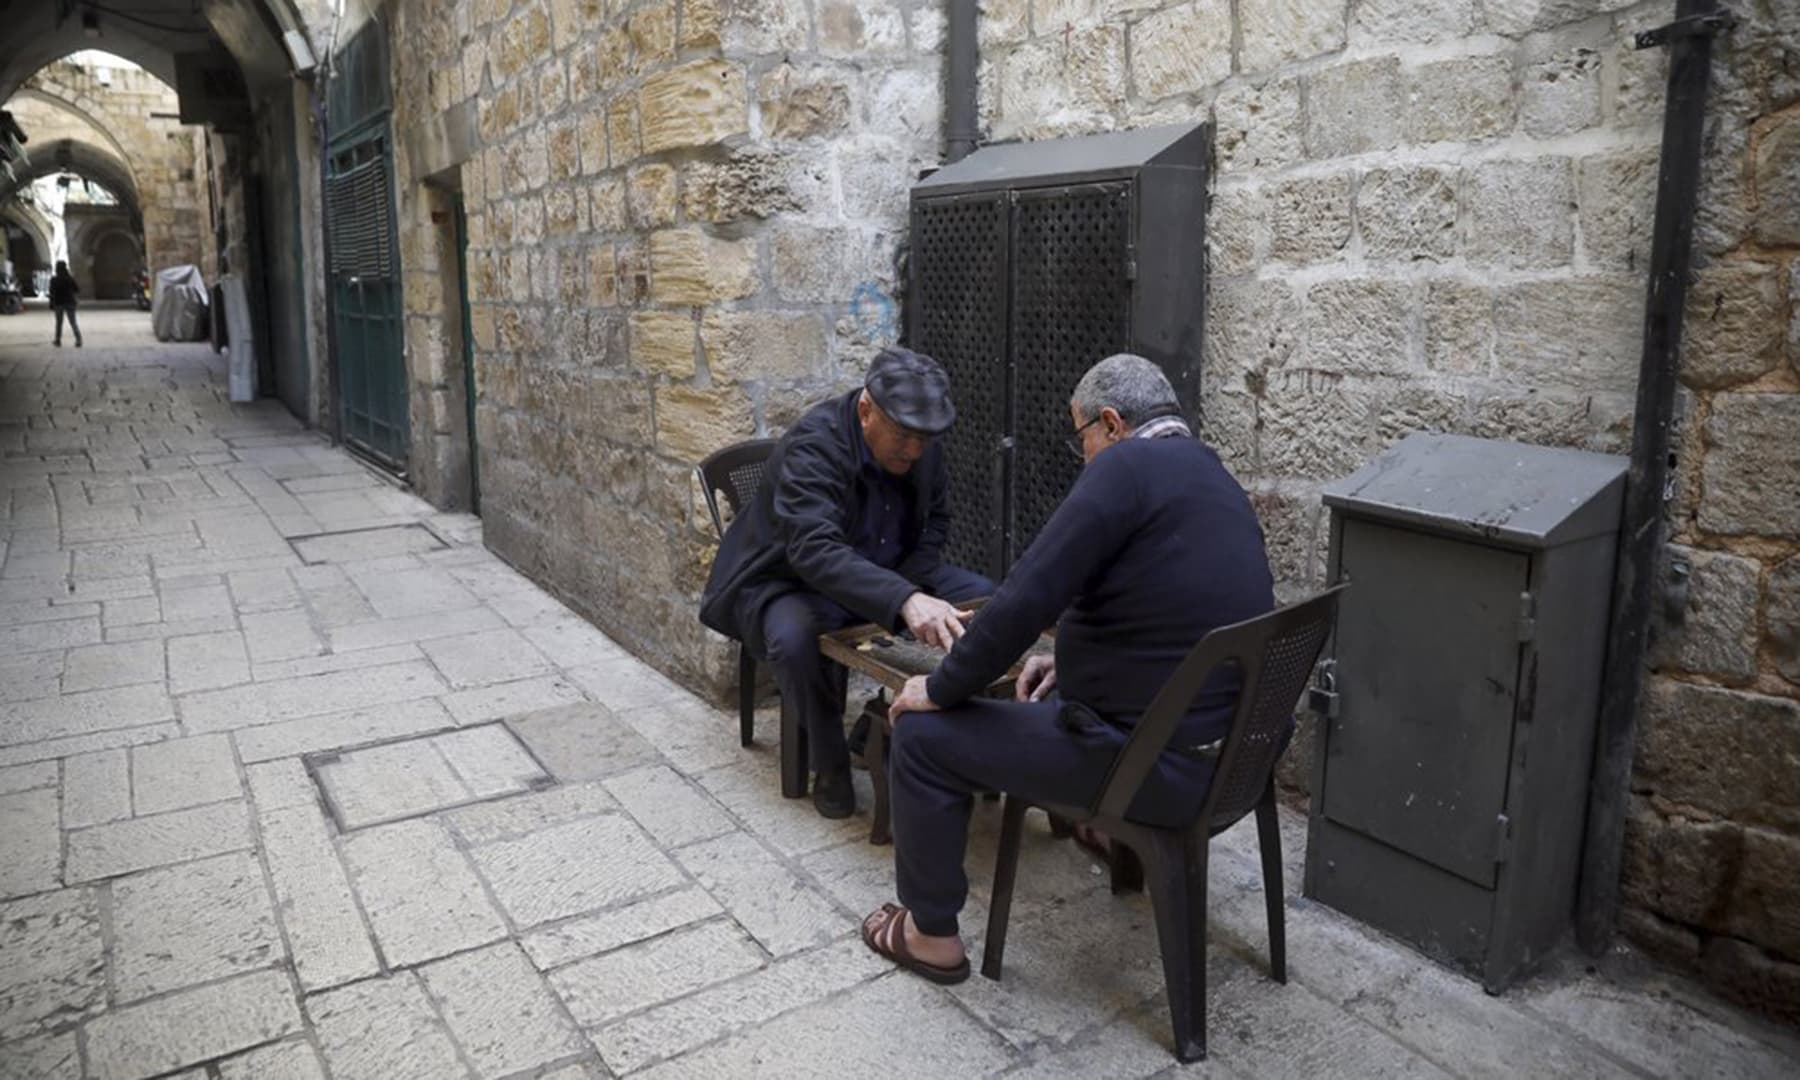 In this March 26 photo, Palestinians play a board game in a deserted Old City in Jerusalem. — AP